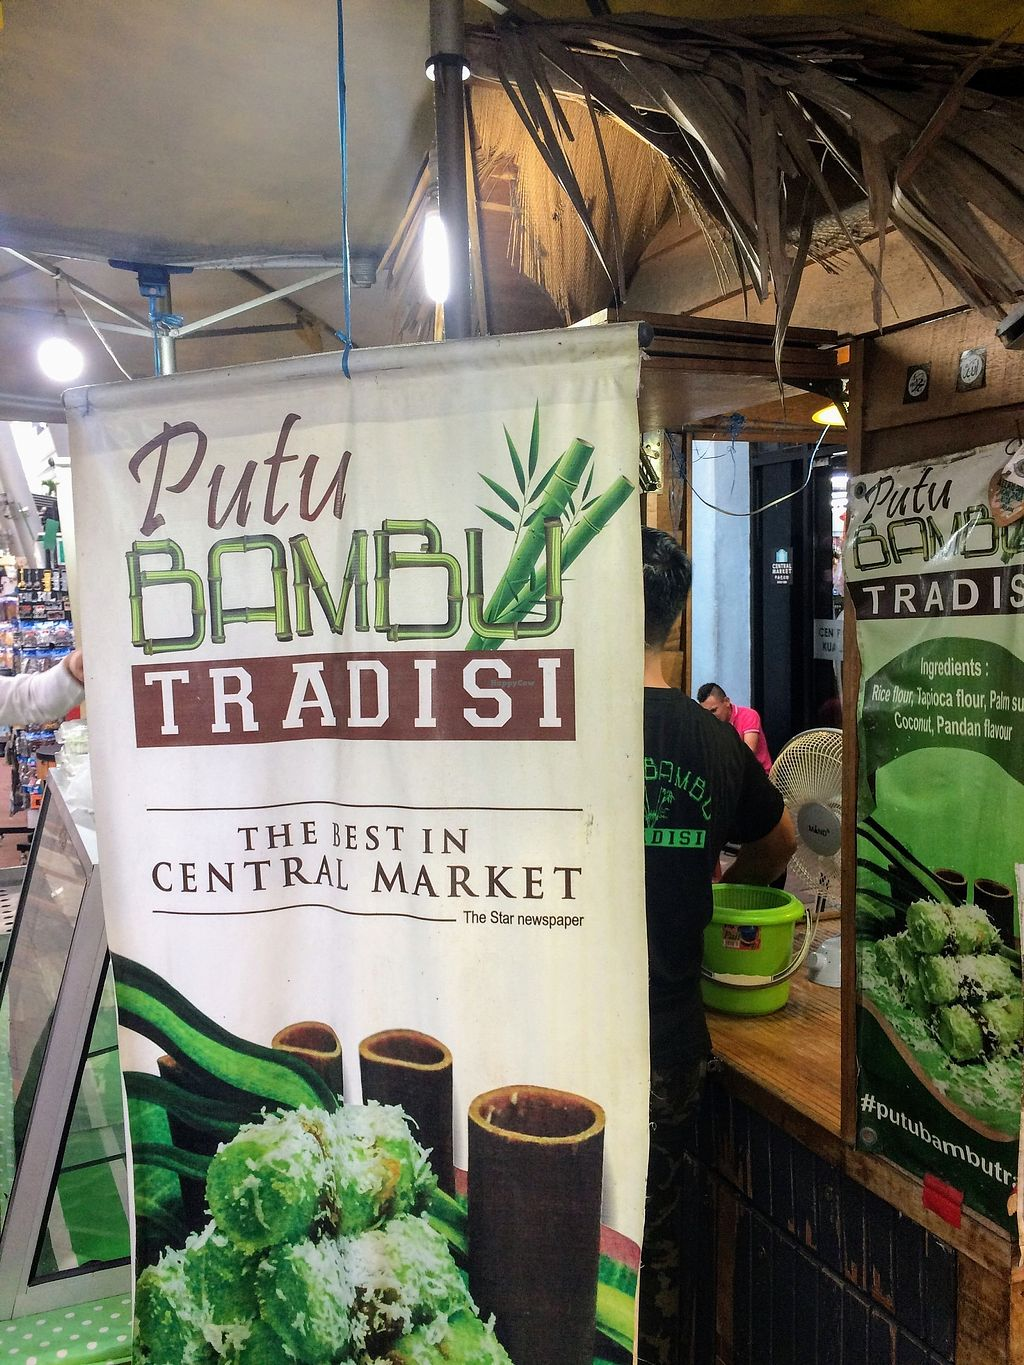 """Photo of Putu Bambu Tradisi  by <a href=""""/members/profile/LaurenceMontreuil"""">LaurenceMontreuil</a> <br/>food stall <br/> February 3, 2018  - <a href='/contact/abuse/image/111029/354238'>Report</a>"""